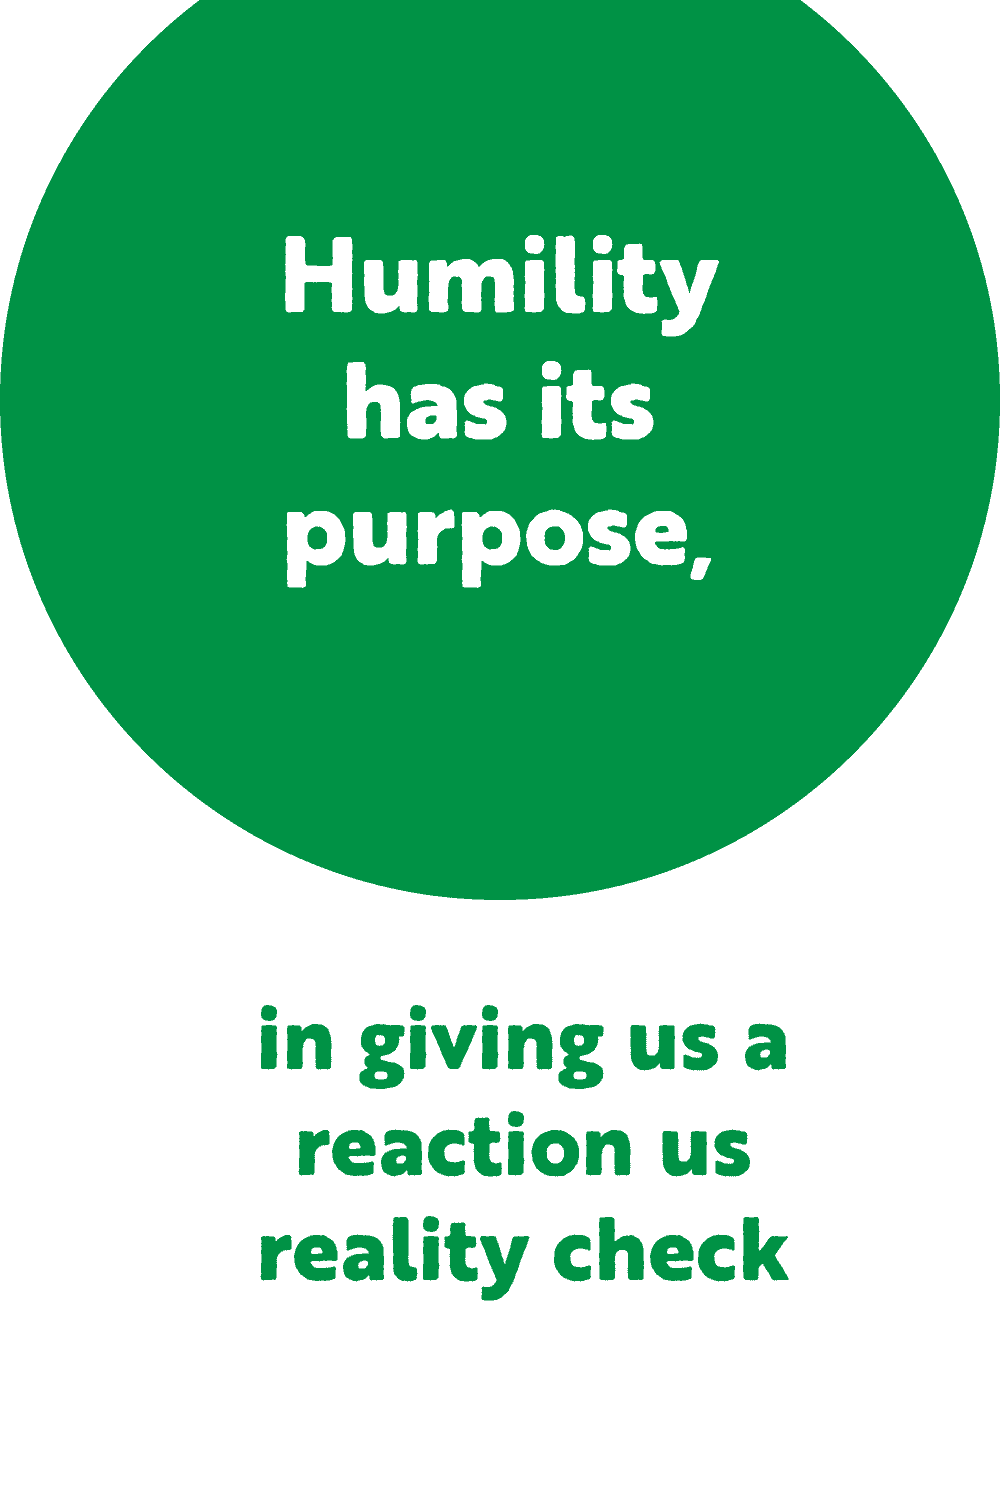 Image on how humility and adversity has purpose